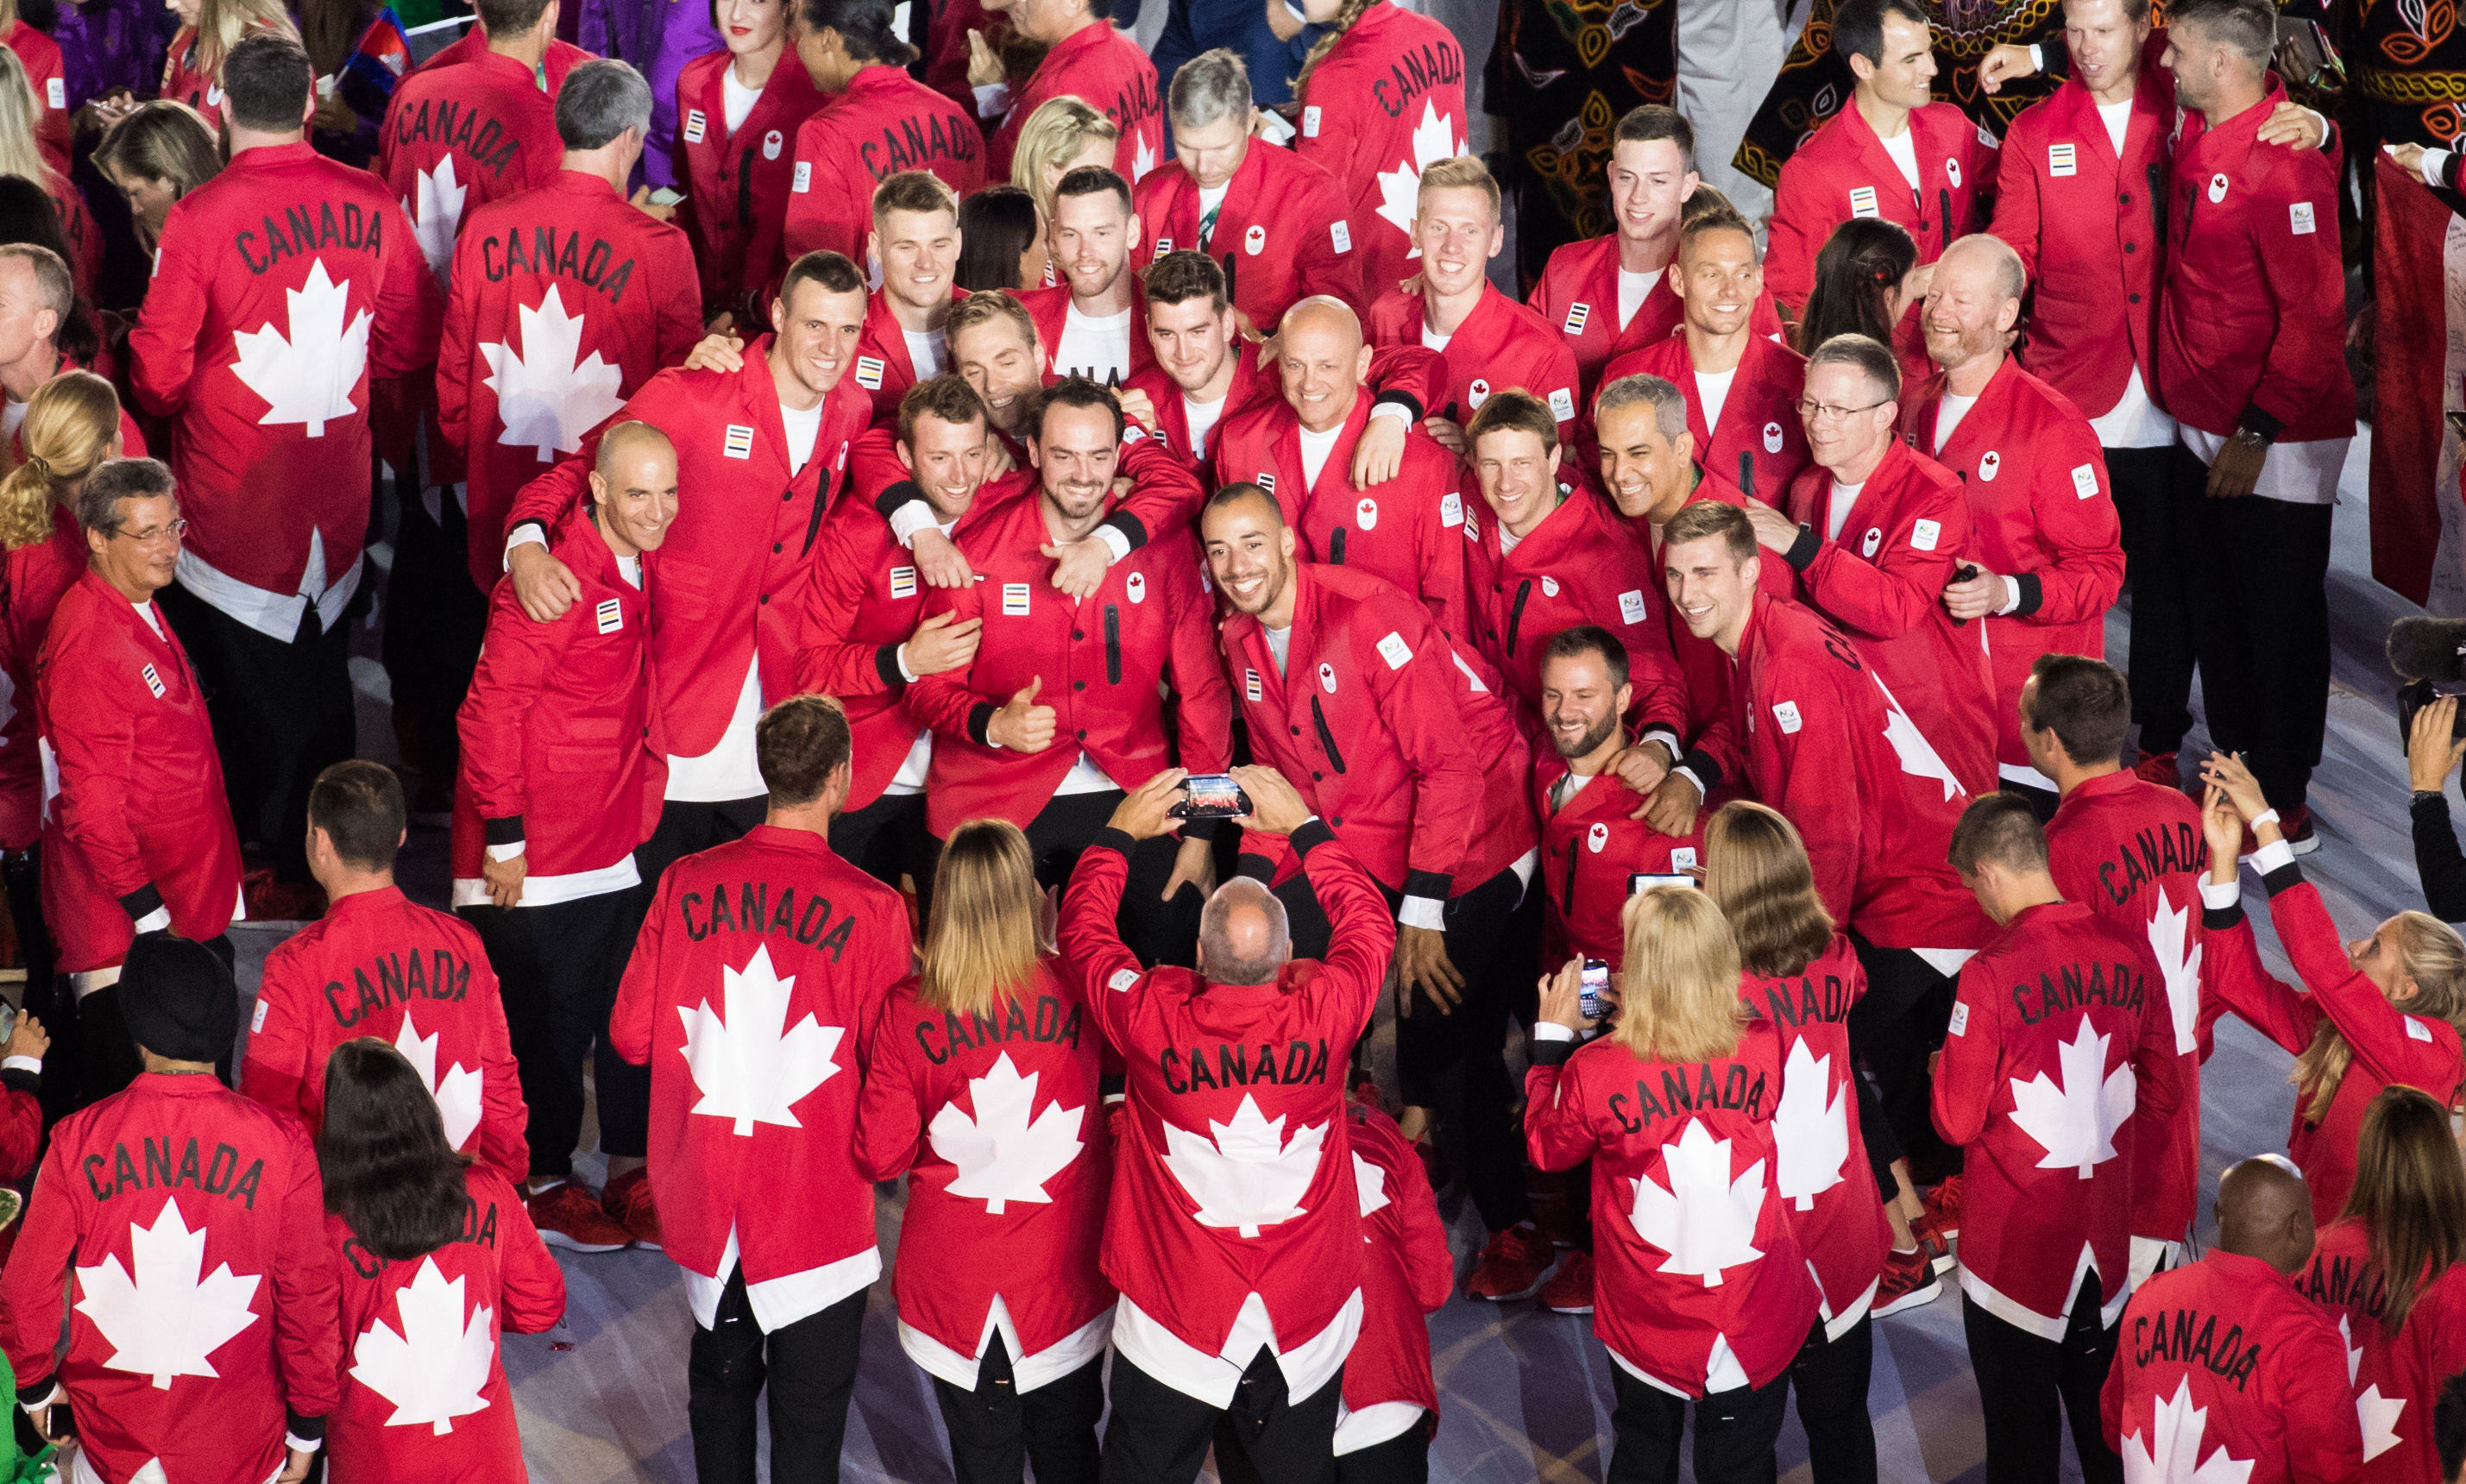 Team Canada Athletes pose for pictures at the opening ceremonies in Rio 2016